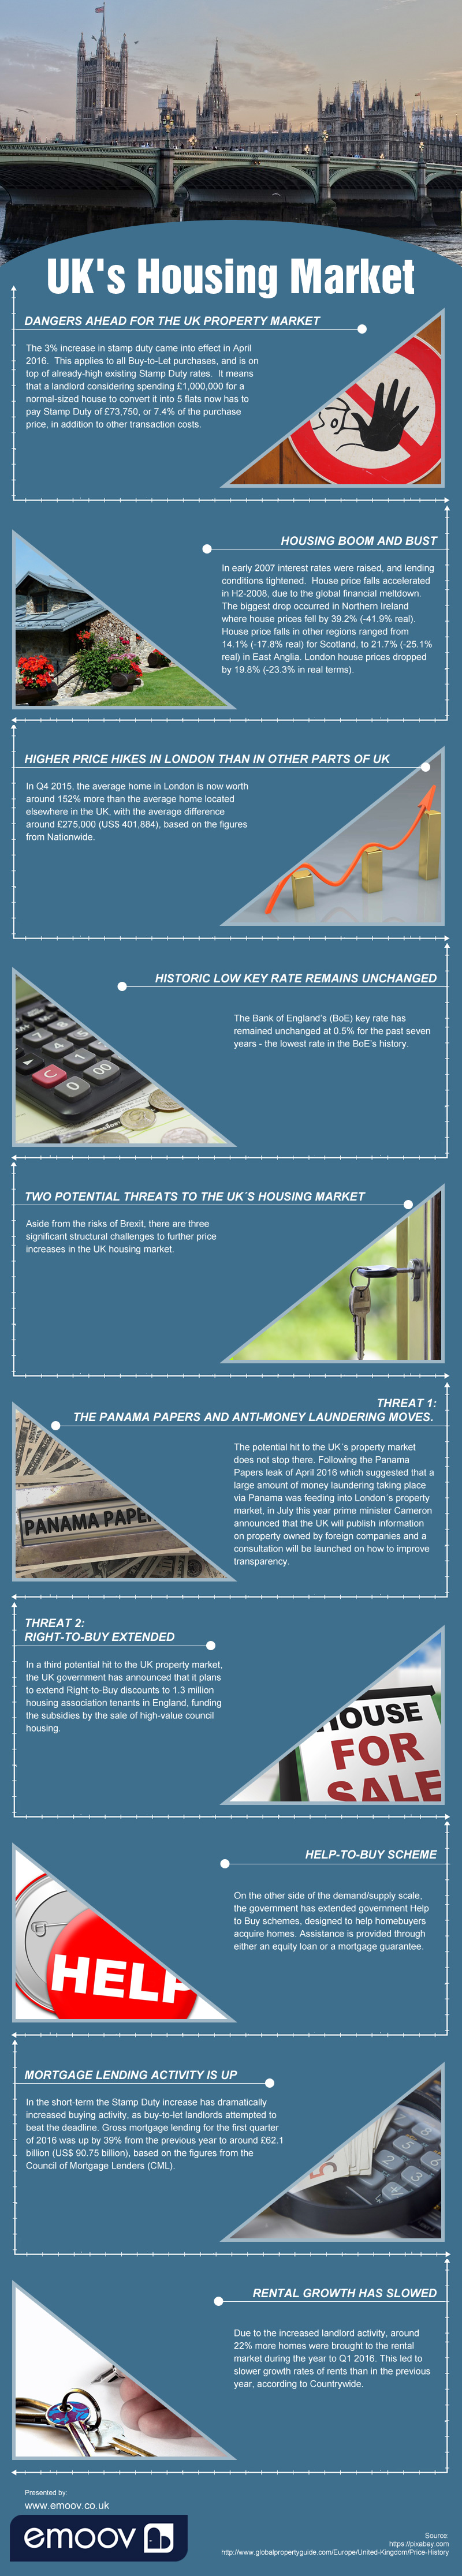 Look Out For These Things About UK's Housing Market - Infographic